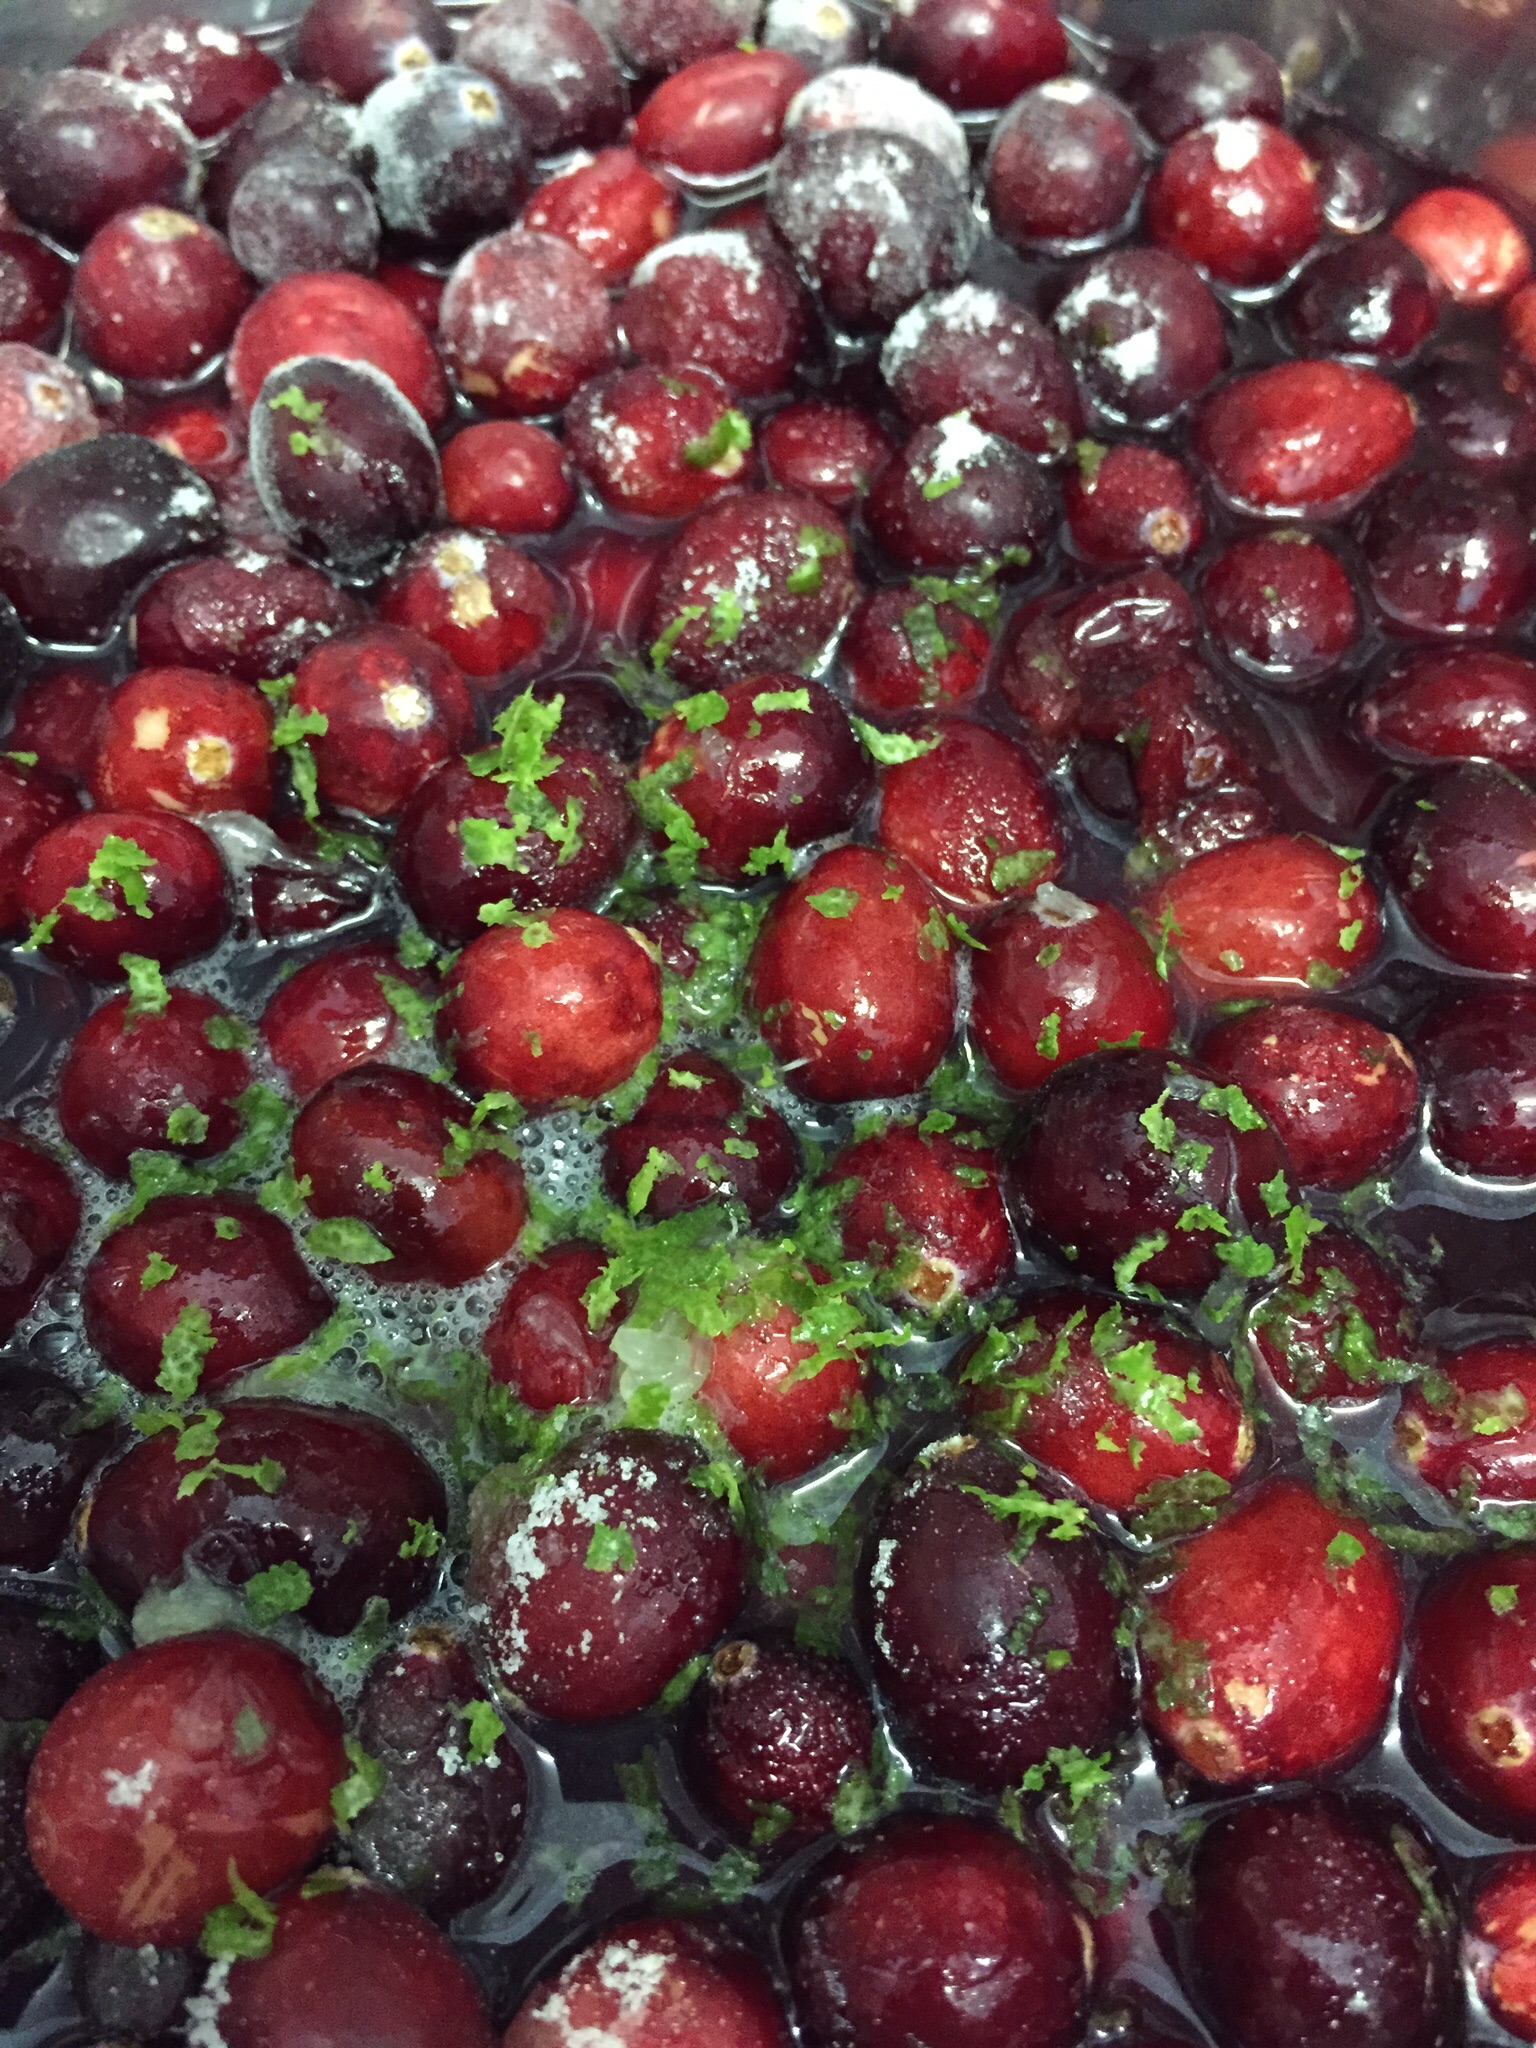 Cranberries waiting to be boozed up